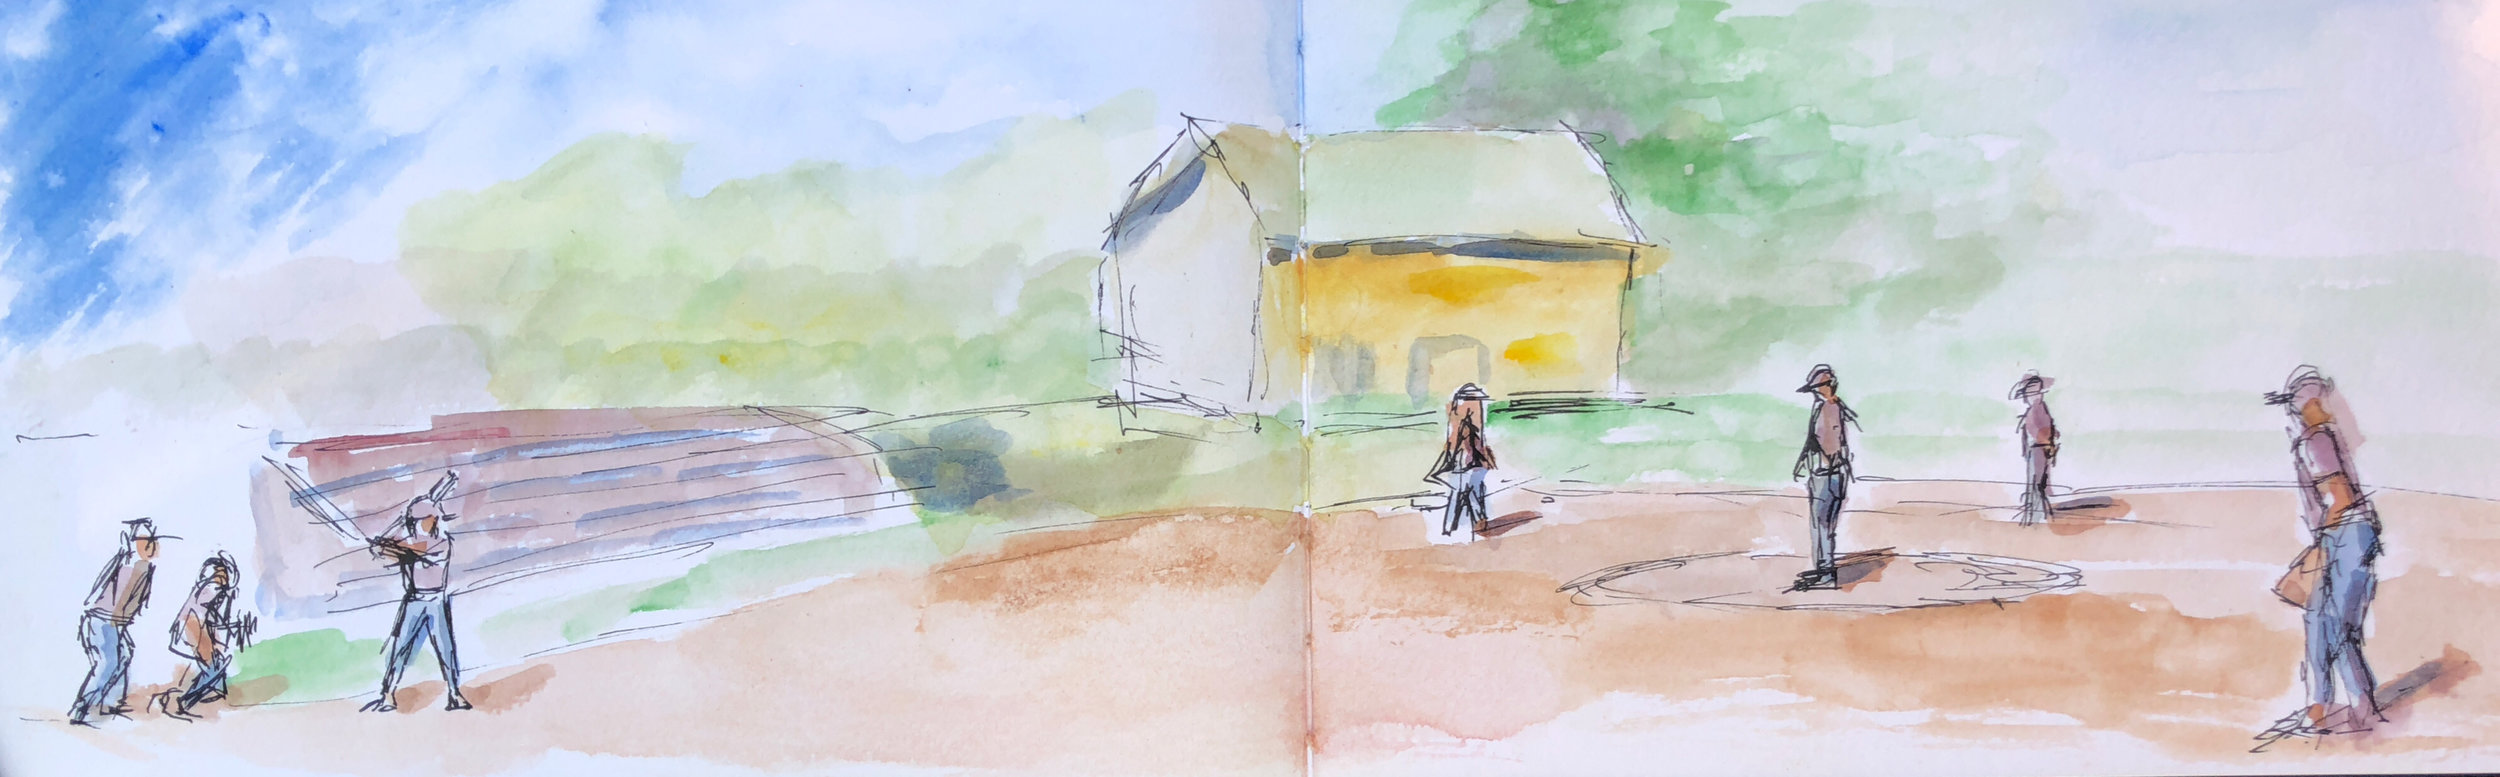 """Geoff Watson, """"Softball field,"""" ink and watercolor on paper, 5"""" x 16,"""" 2018."""